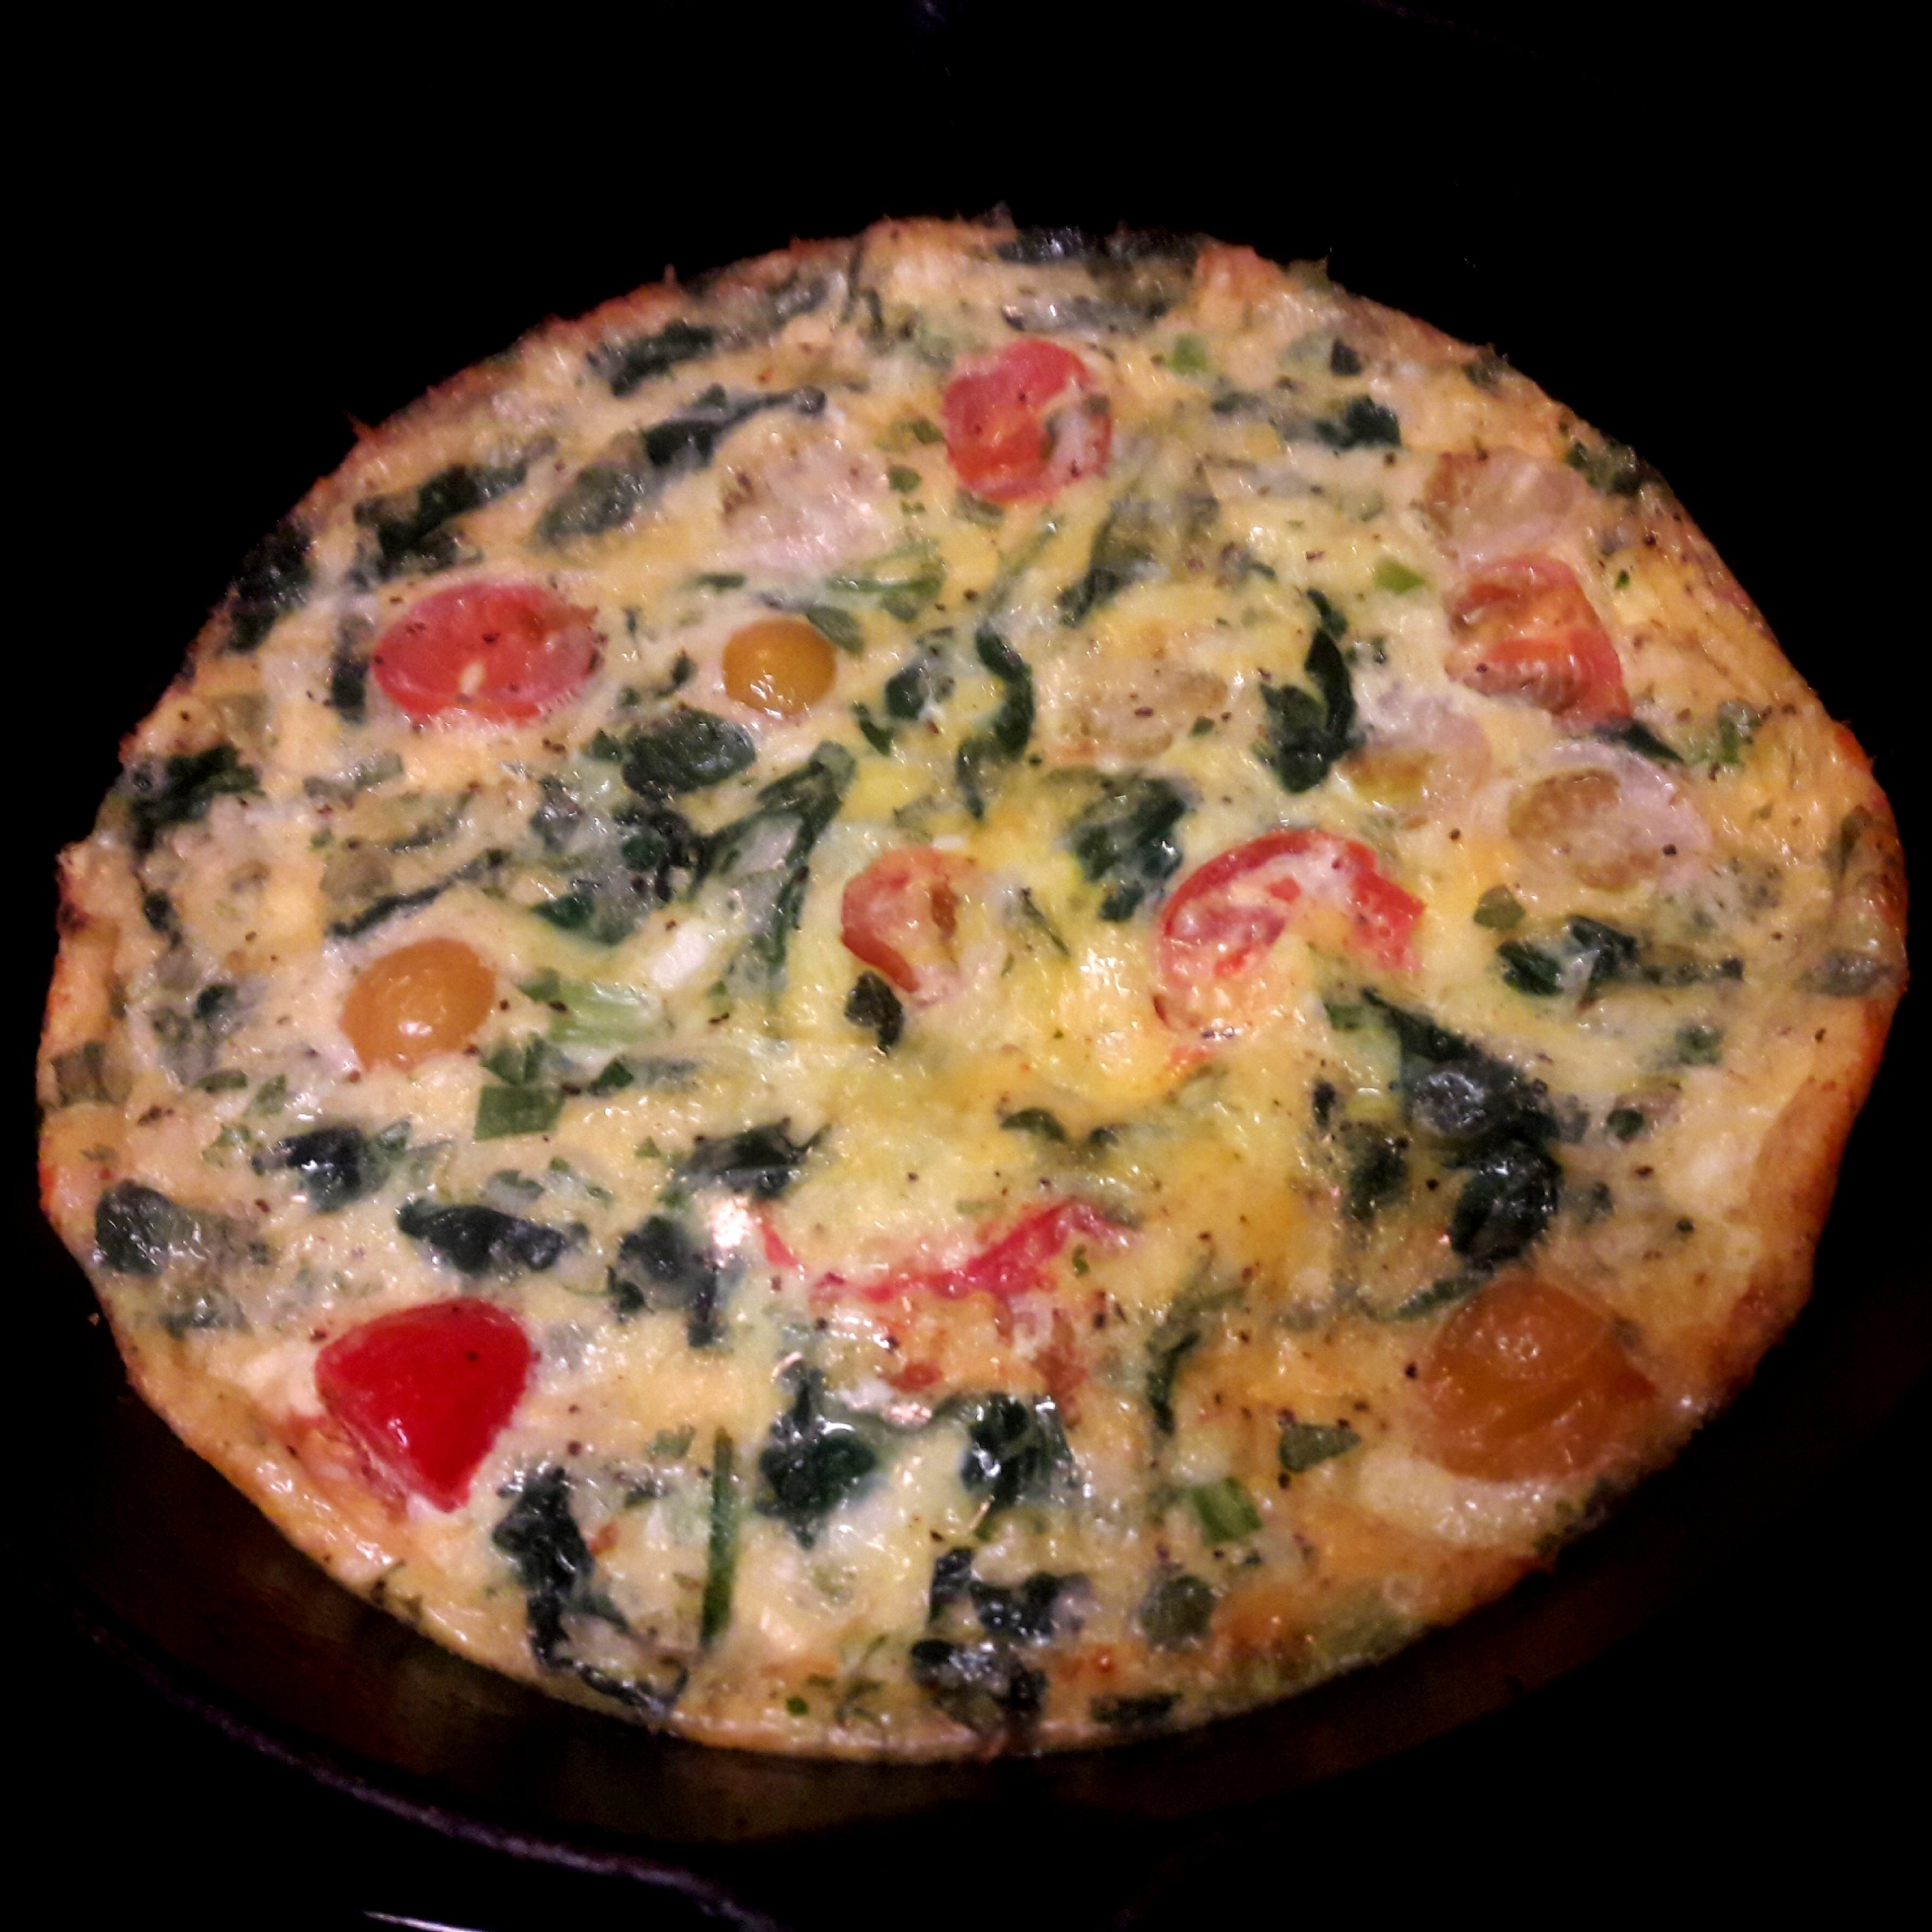 Hot or Cold Vegetable Frittata Victoria Harvis